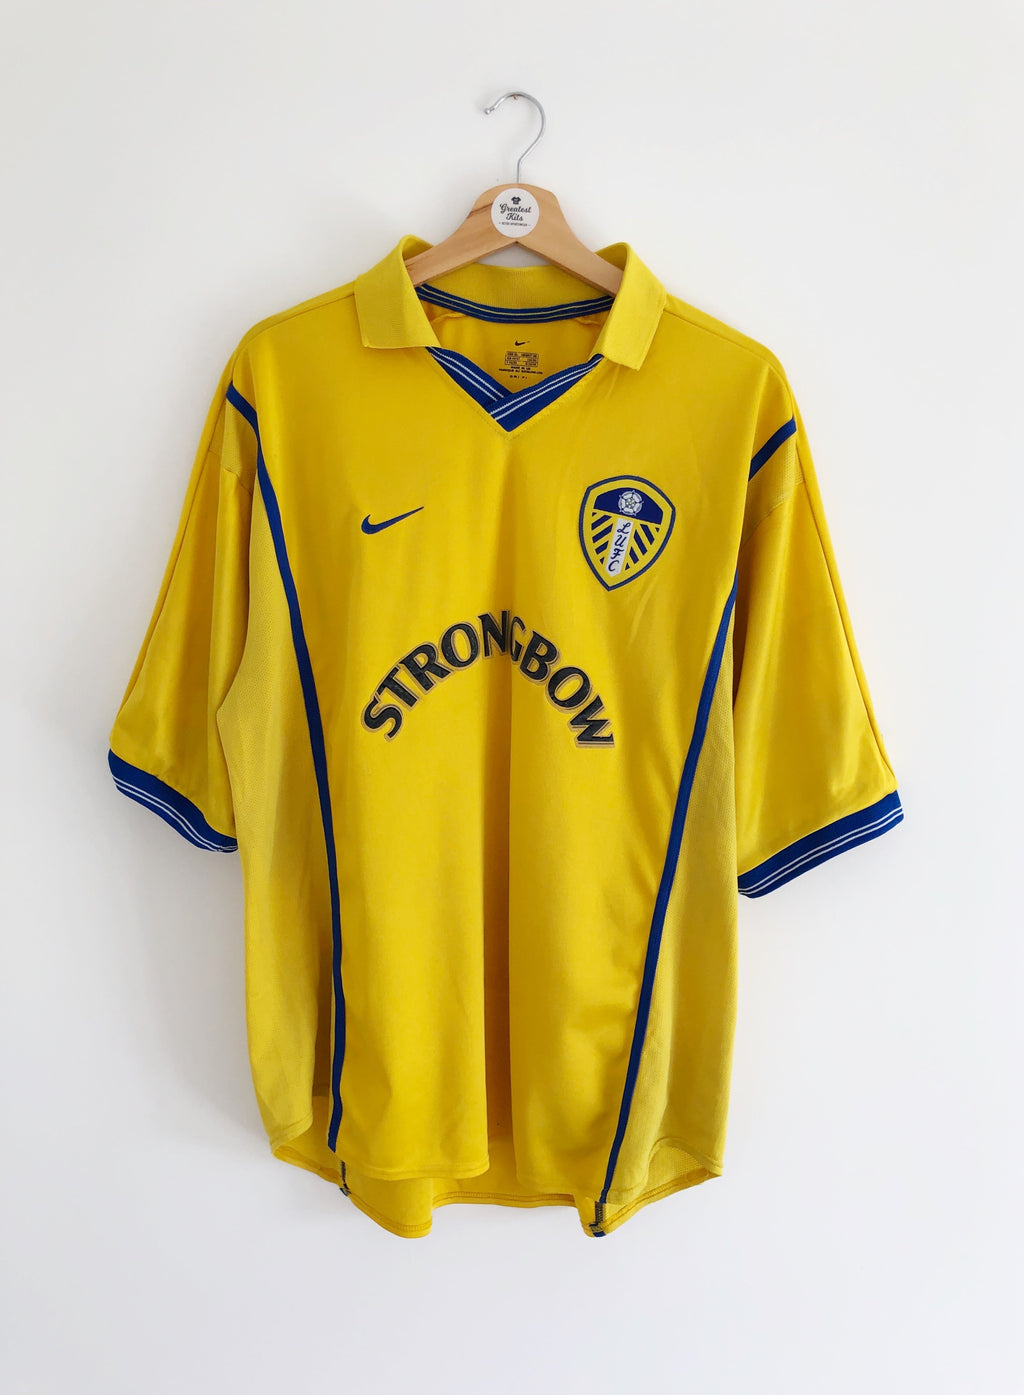 2000/02 Leeds United Away Shirt (XL) 6/10